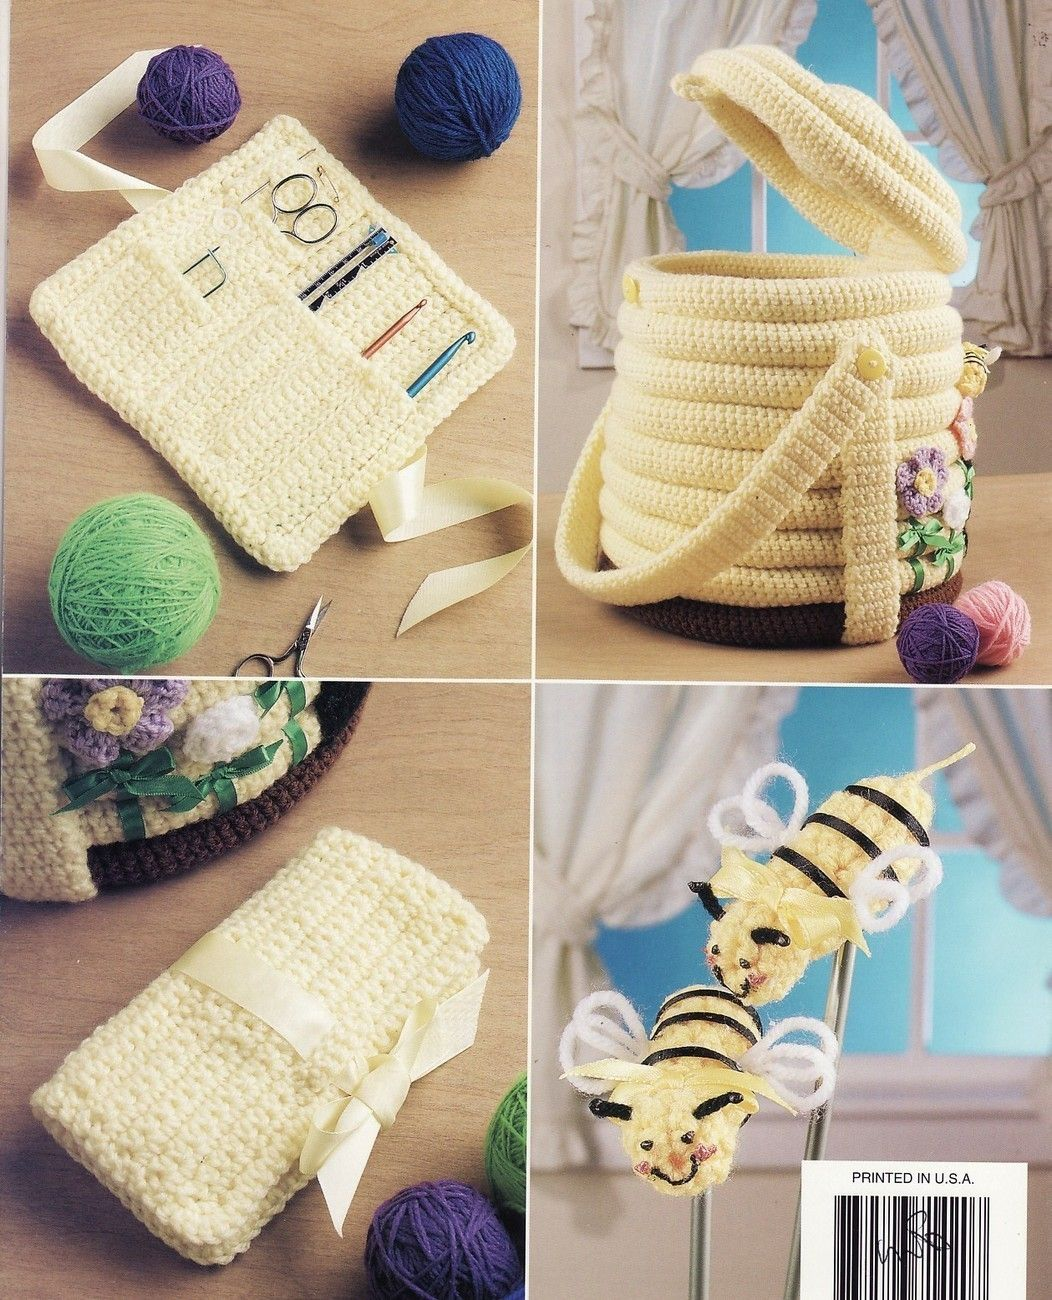 Beehive Craft Caddy Crochet Patterns Book Annies Attic - Mixed ...